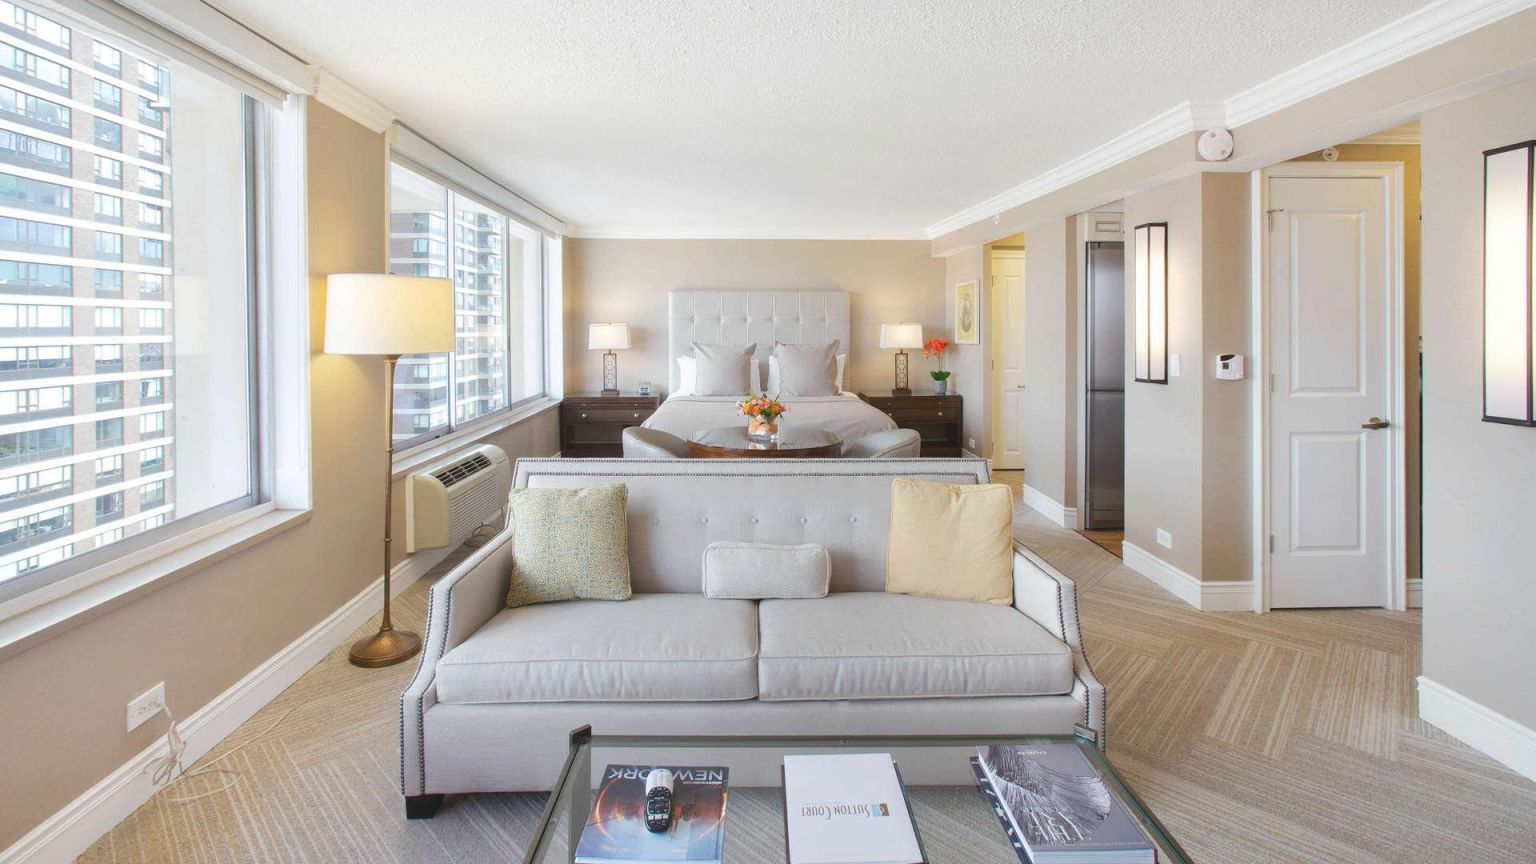 Corporatehousing | Short-Term Rentals | Furnished Apartments intended for Luxury One Bedroom Furnished Apartment